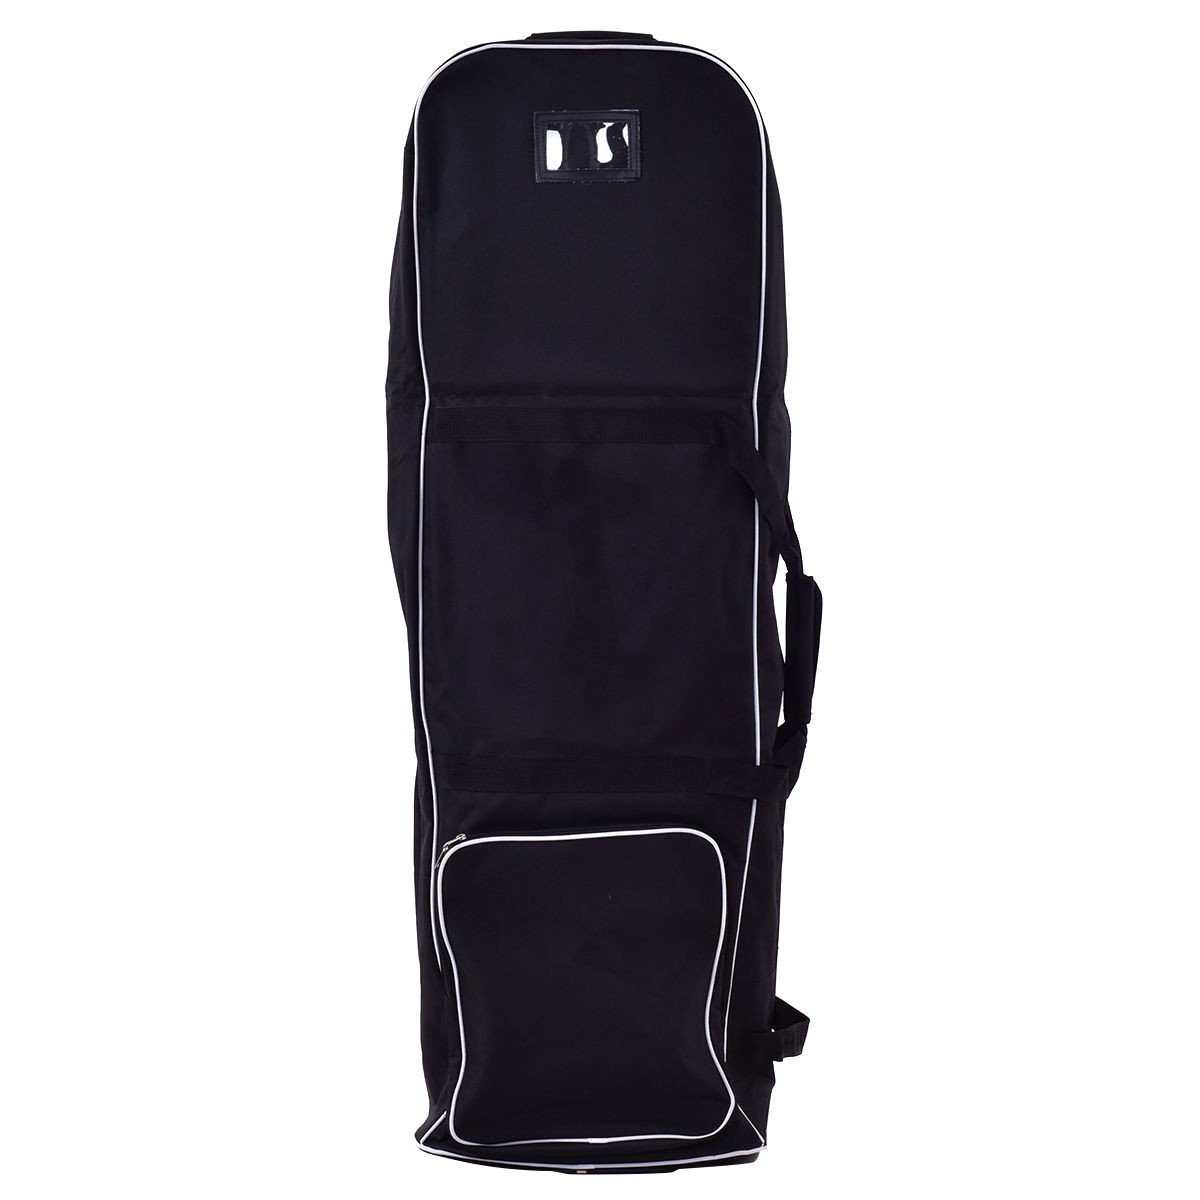 MD Group Golf Bag Black Foldable Travel Cover Outdoor Bags Cart Case Wheel Lightweight 600D Oxford Cloth